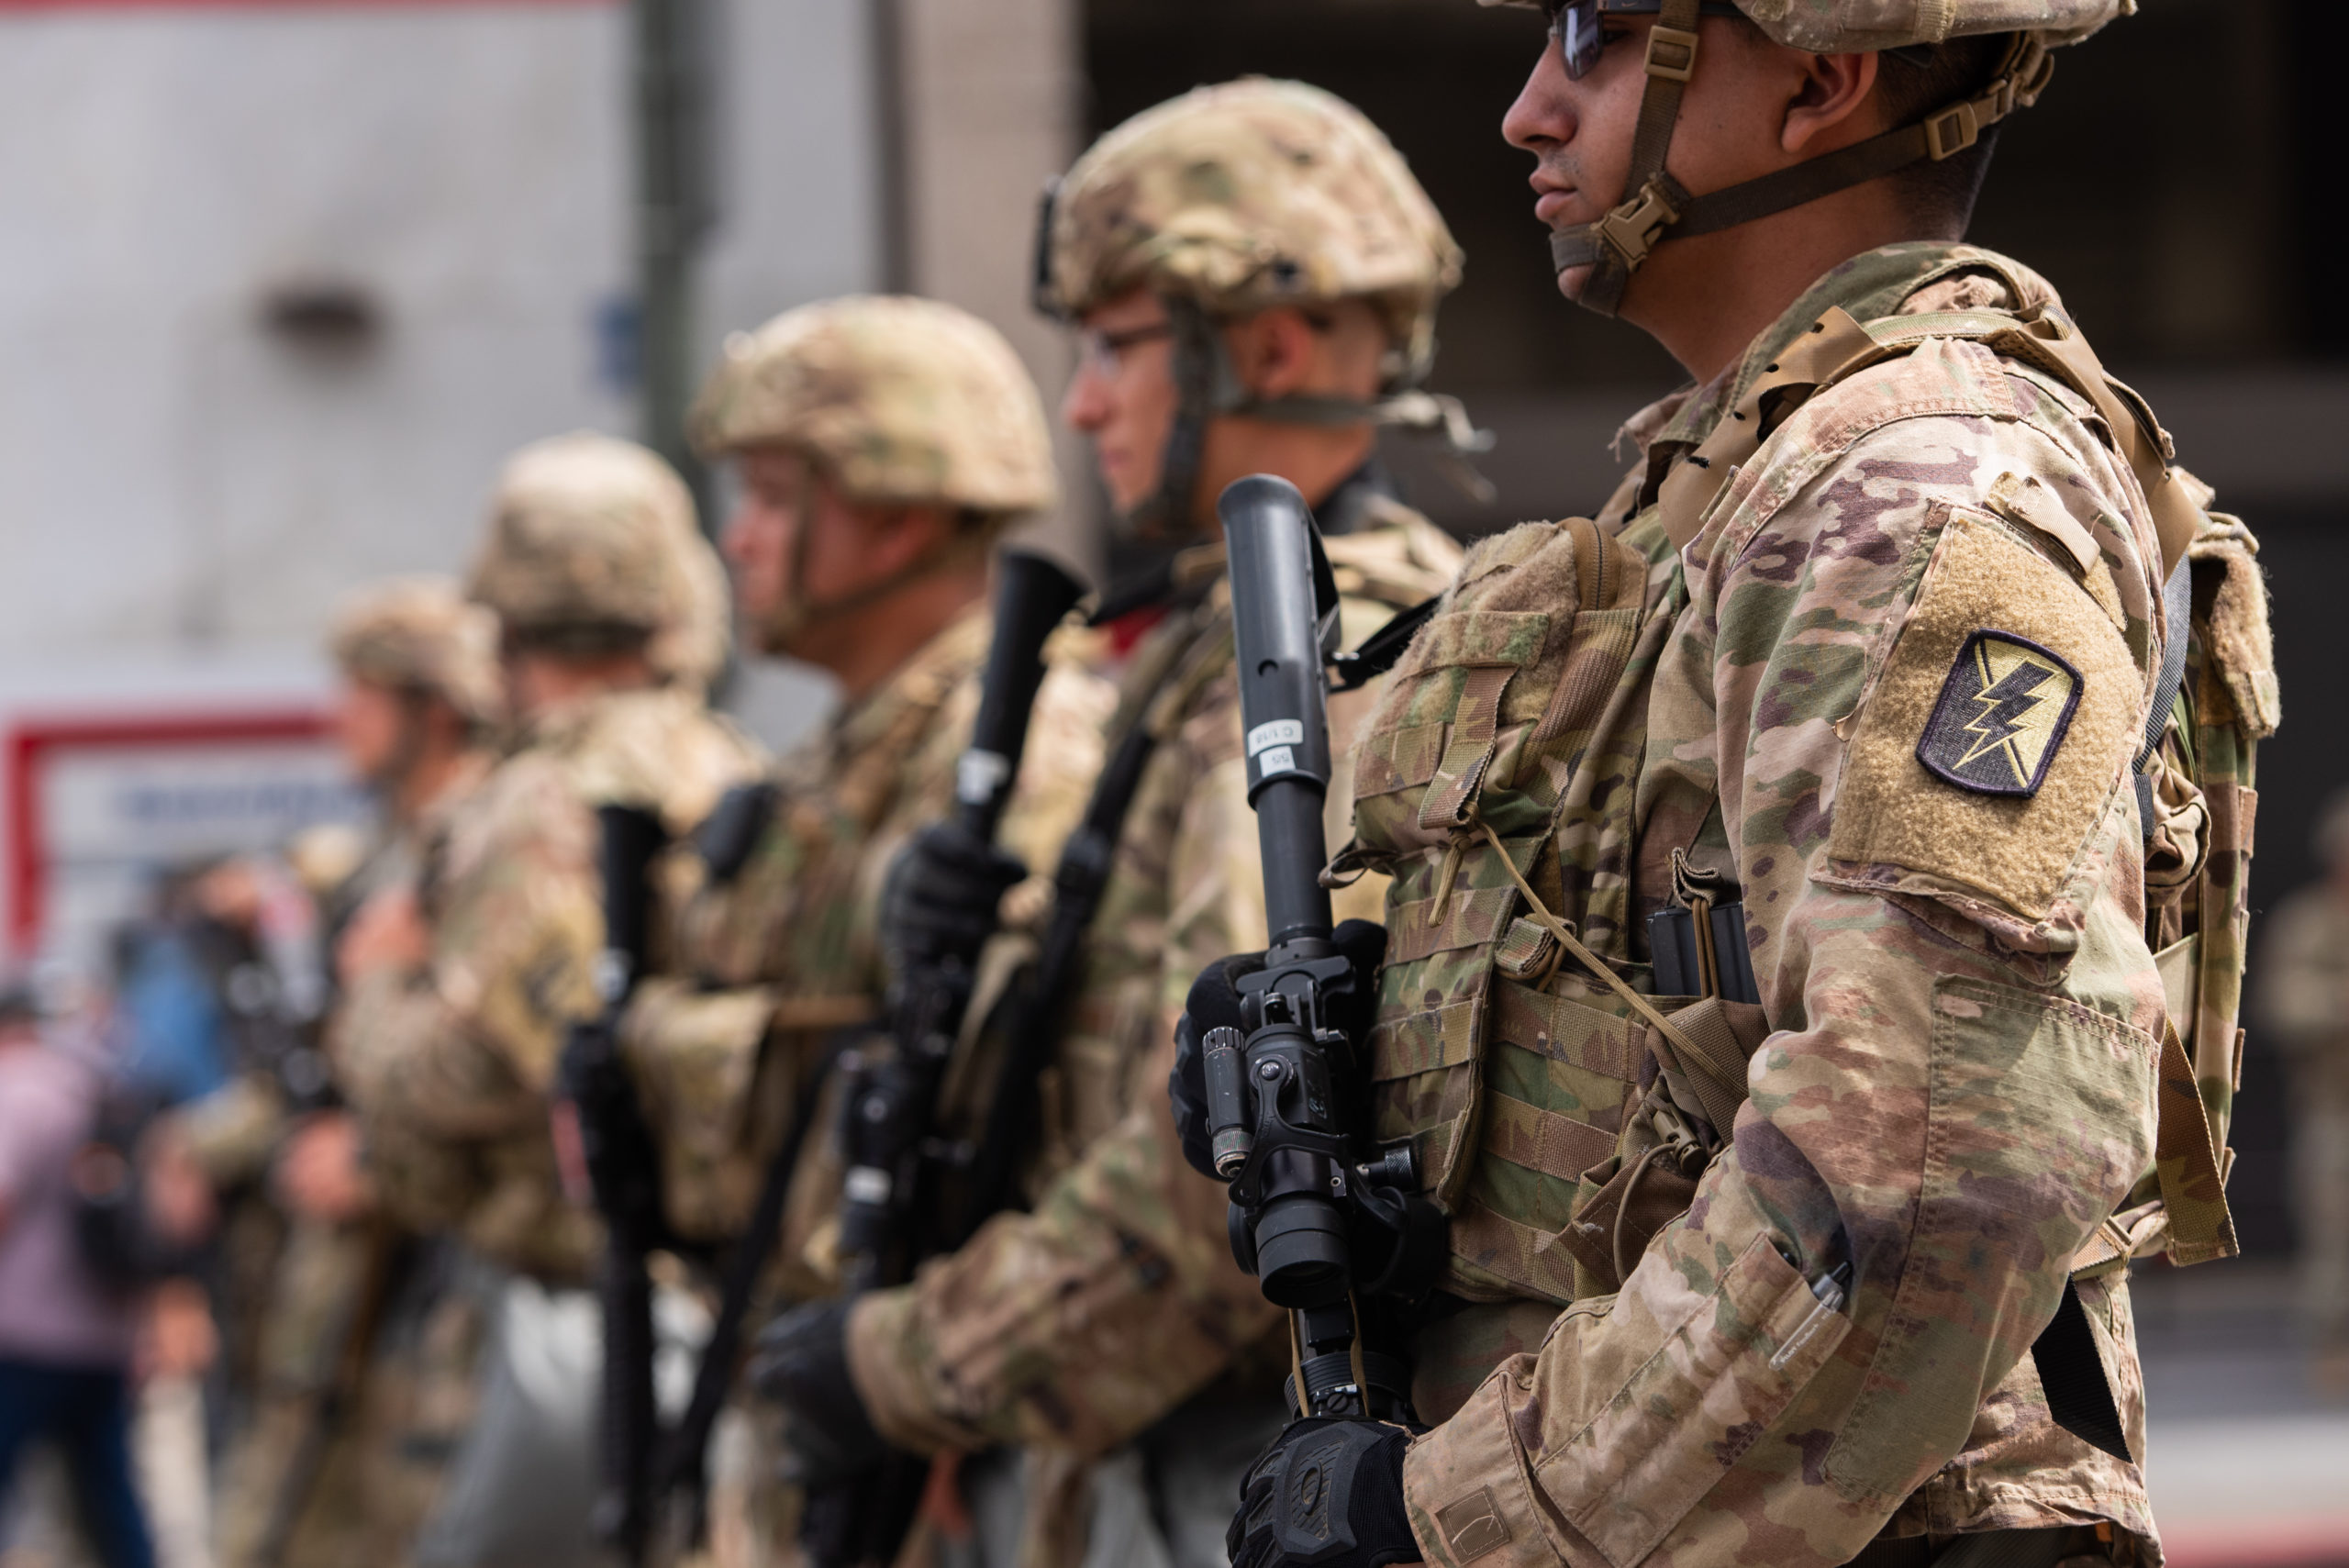 Private Armies Attack the Rule of Law